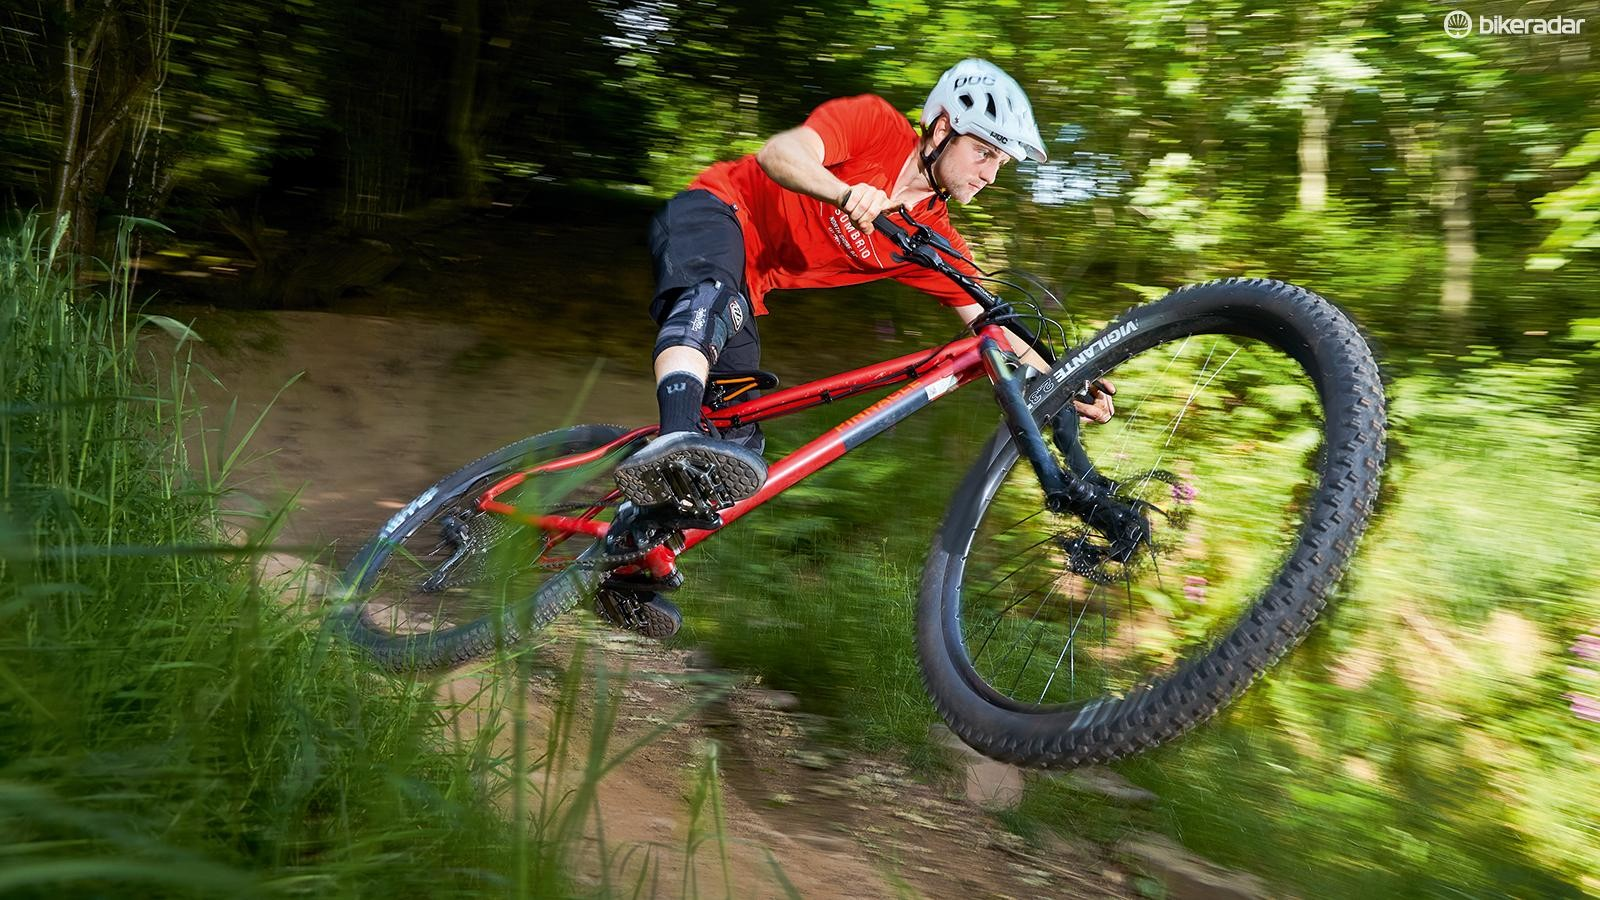 You'll normally only find 35mm stems and 460mm-reach frames on the most progressive full-suspension bikes